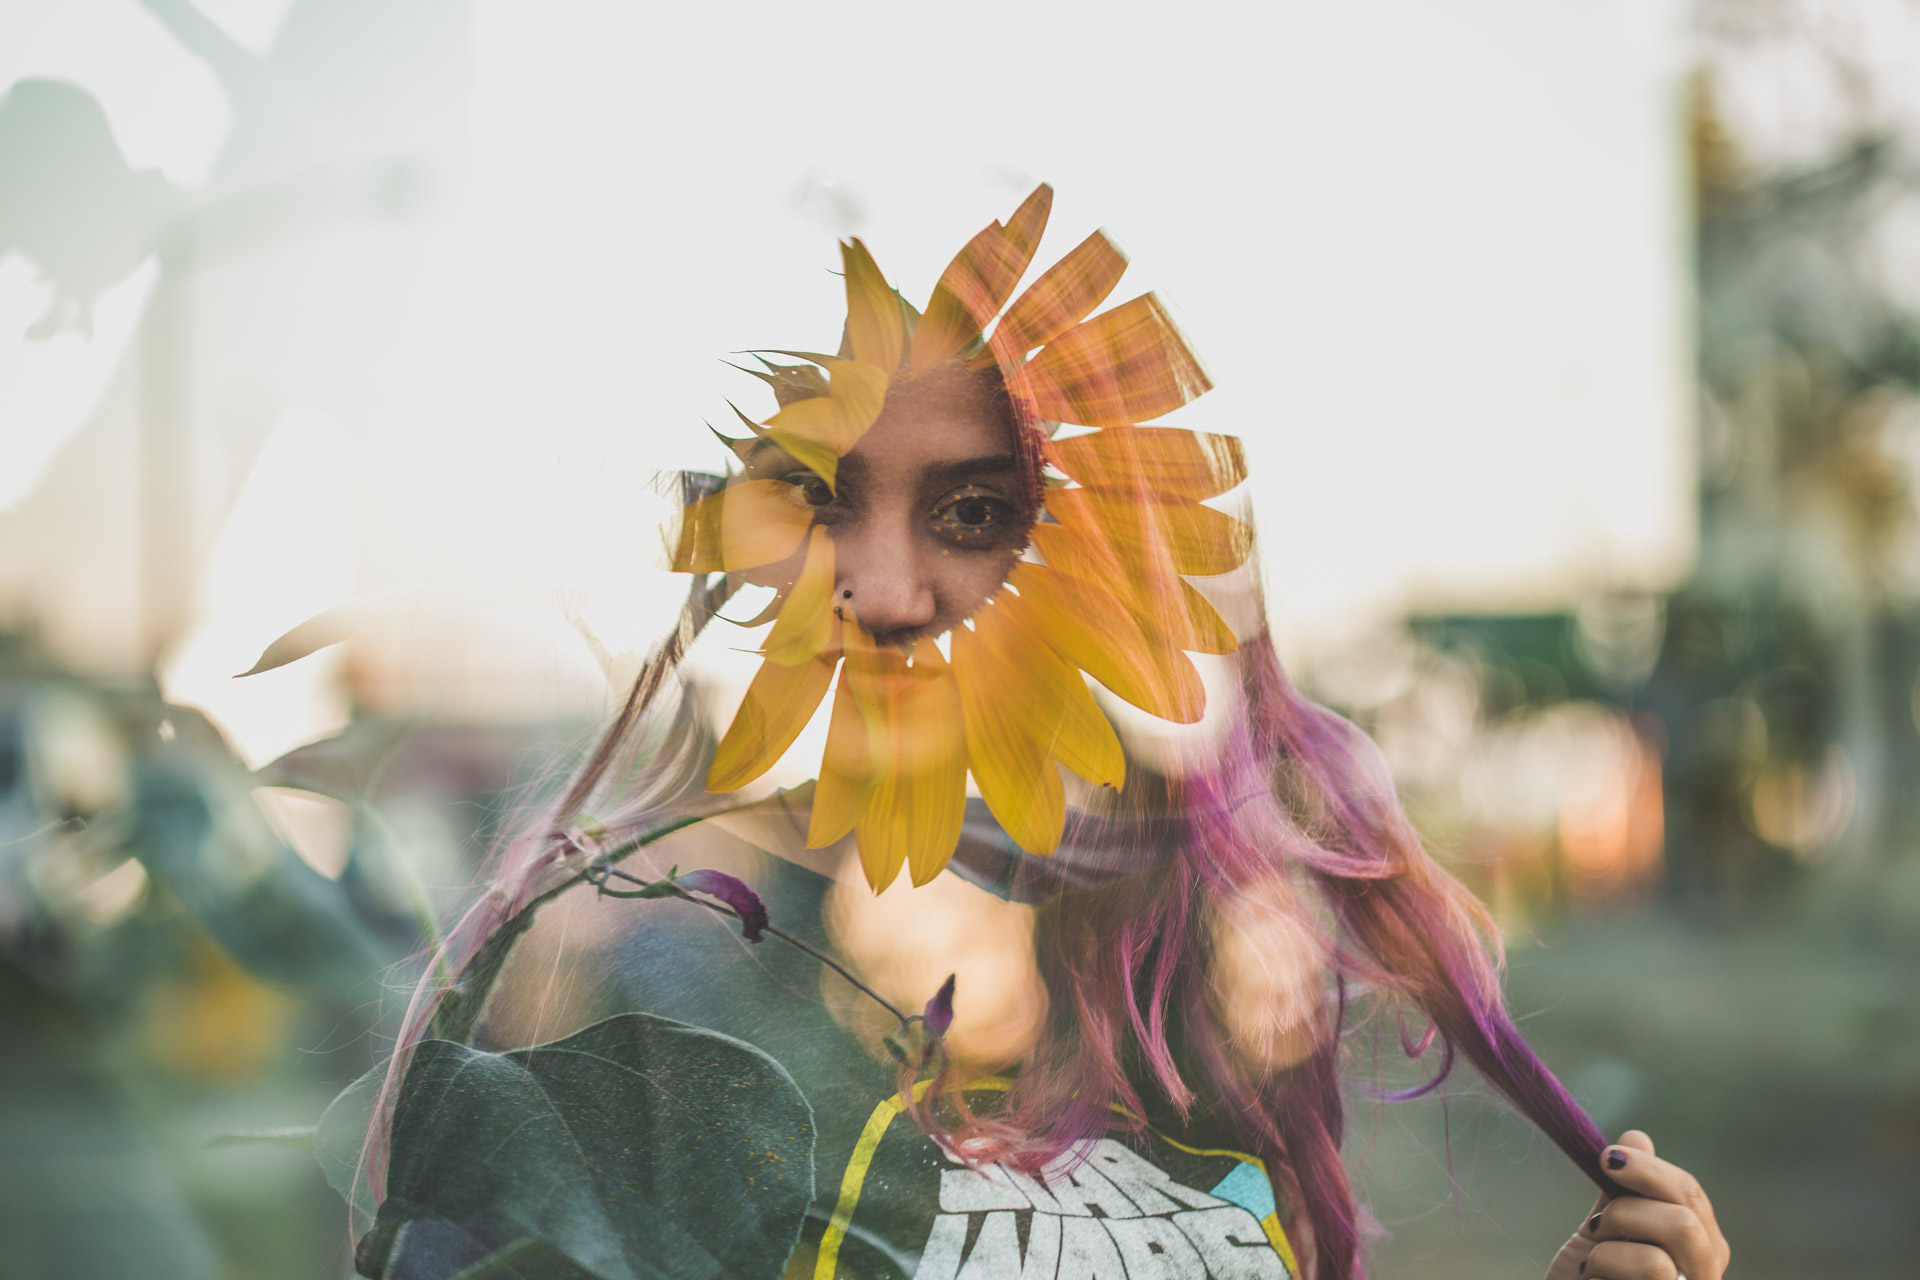 purple hair - star wars - sunflowers - tattoos - double exposure